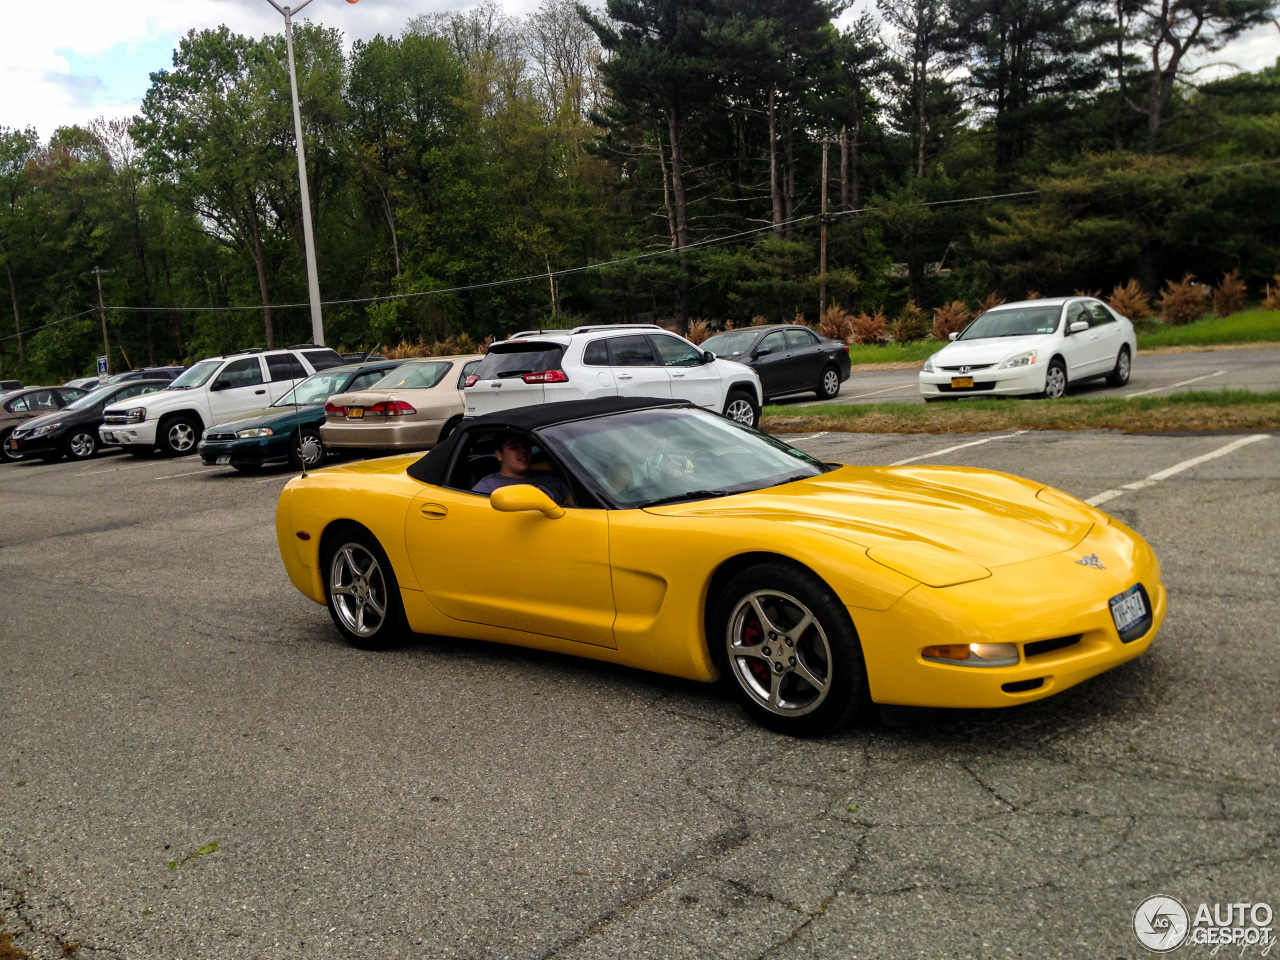 Chevrolet Corvette C5 Convertible 12 July 2016 Autogespot